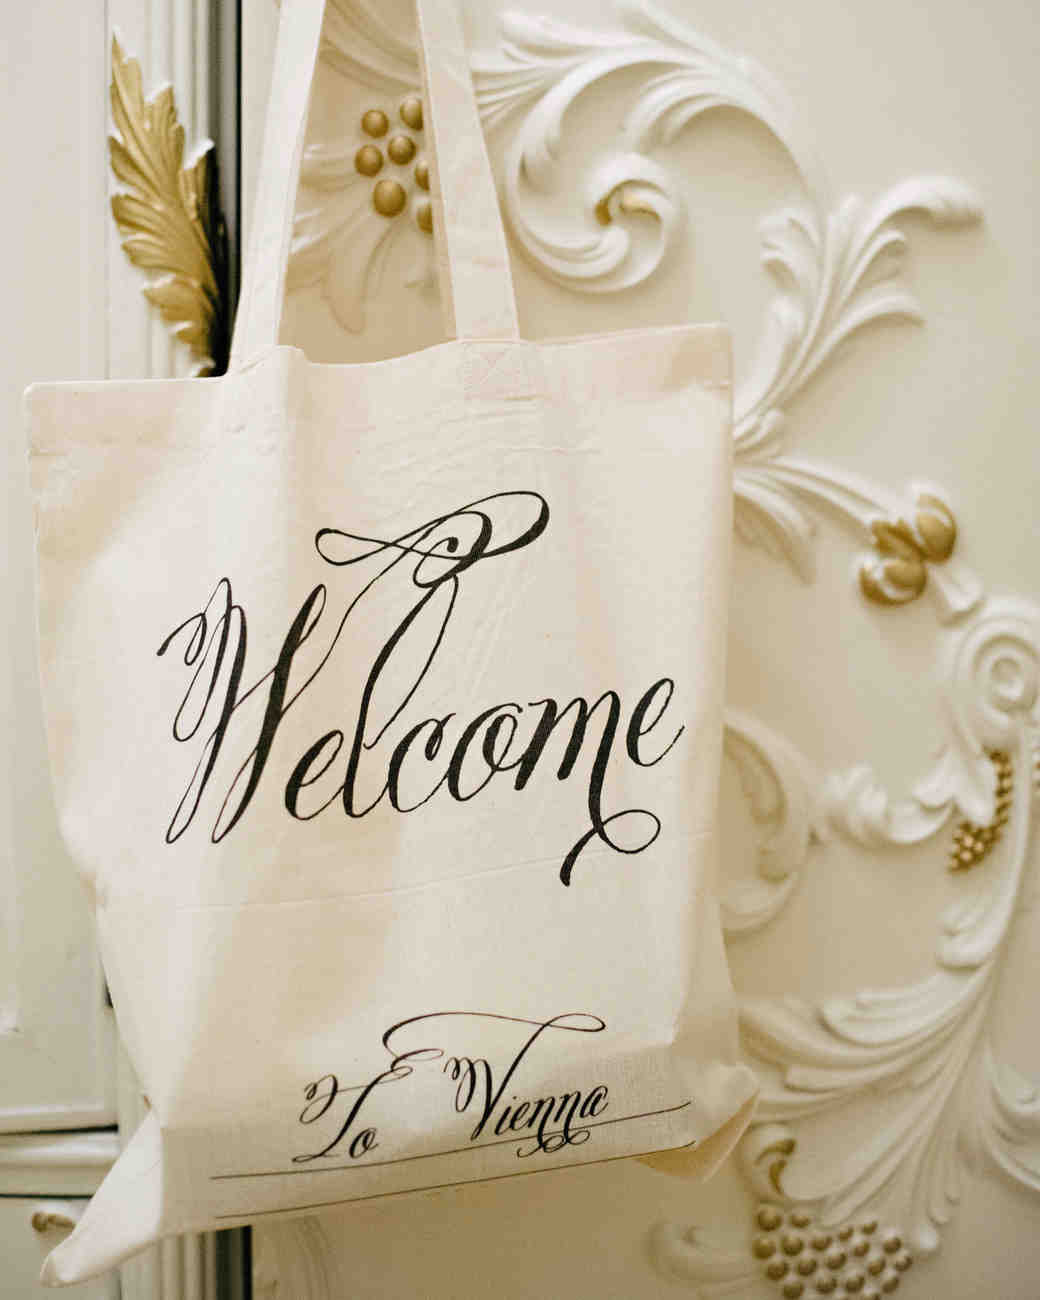 Gifts For Out Of Town Wedding Guests: 80 Welcome Bags From Real Weddings